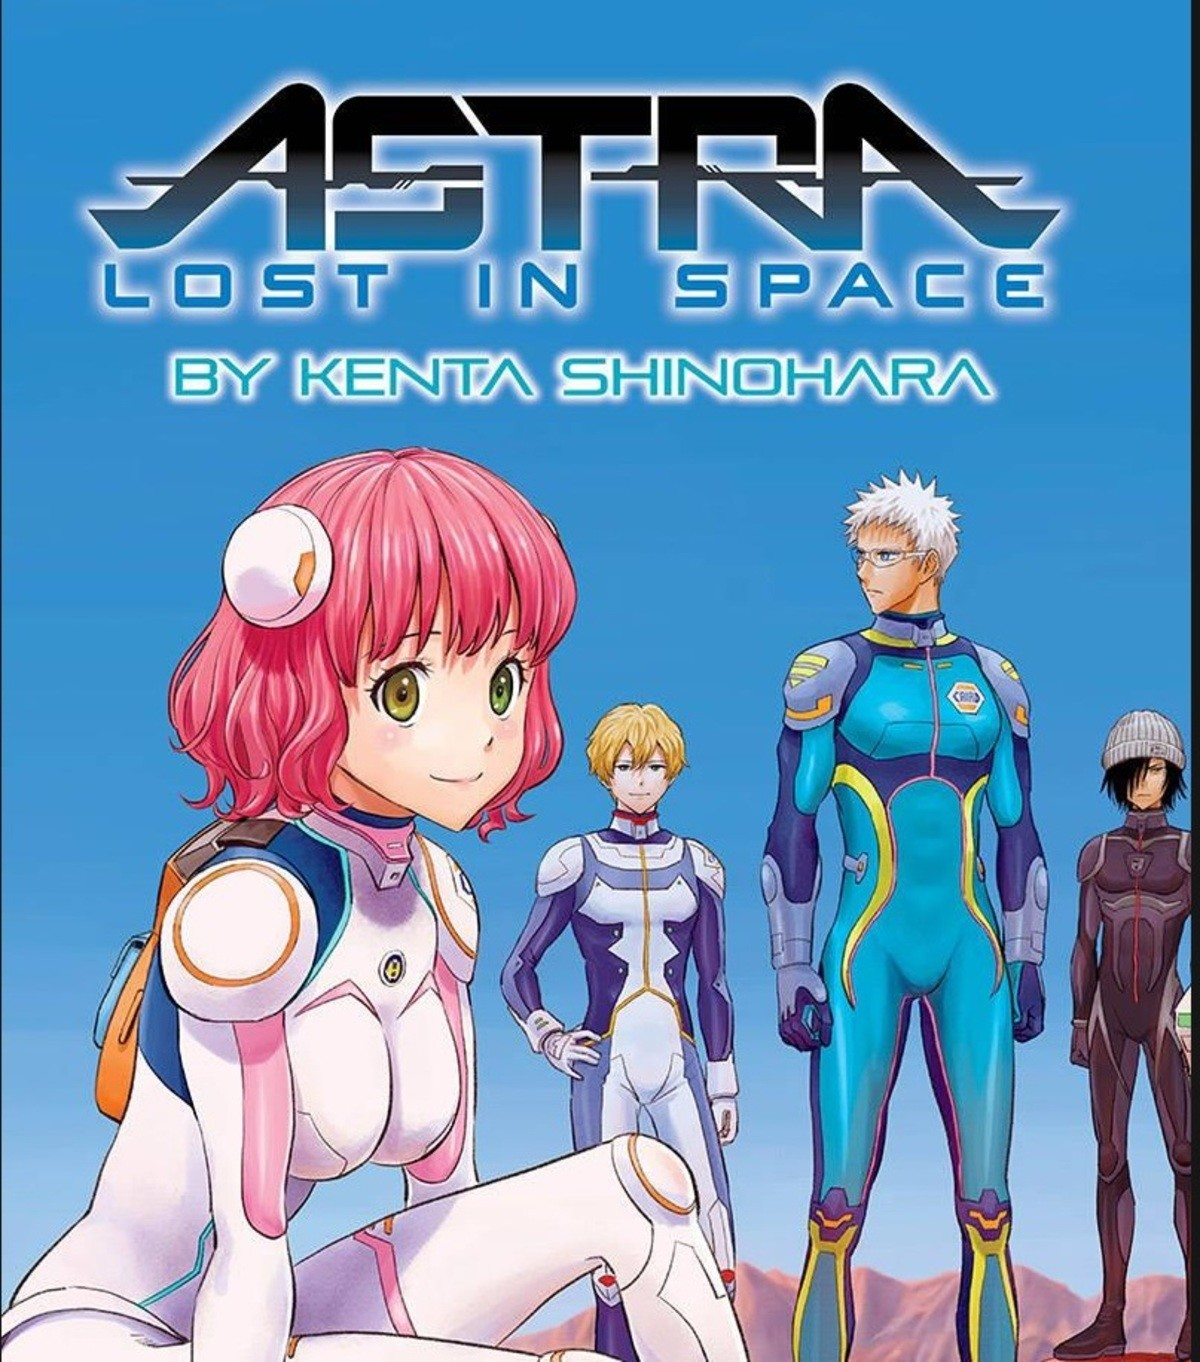 Legend's Manga Picks #4. Astra Lost in Space A bunch of kids go to space camp and end up far away from home due to an accident, and must go from alien planet to